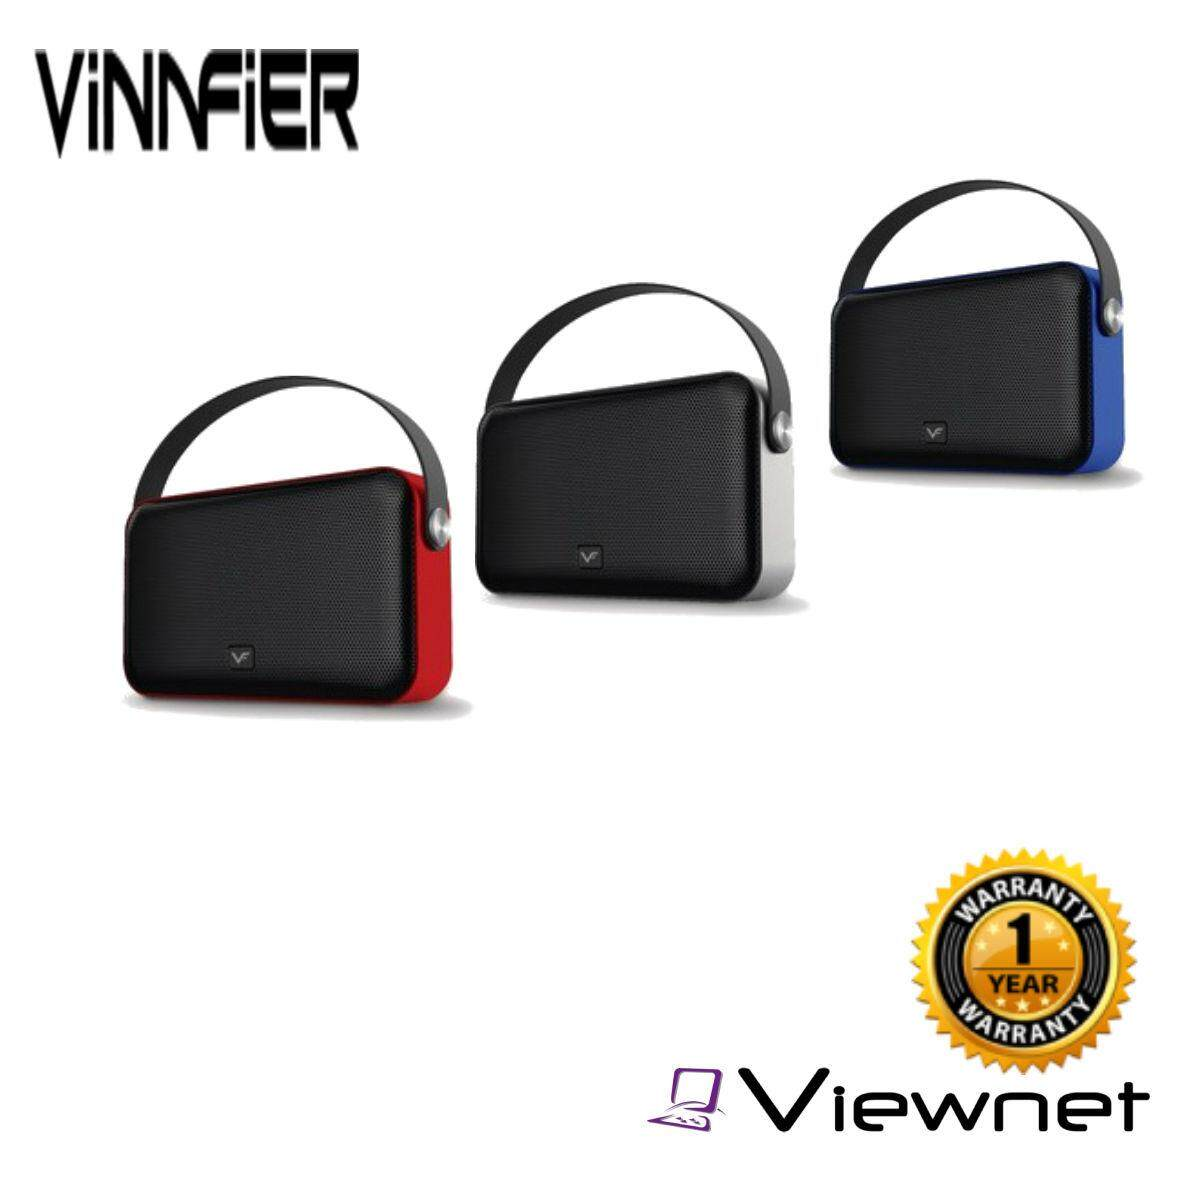 VINNFIER Neo Boom PLUS Wireless Bluetooth portable speaker with USB Drive , Micro SD slot and FM Radio (BLACK/GREY/BLUE/RED)